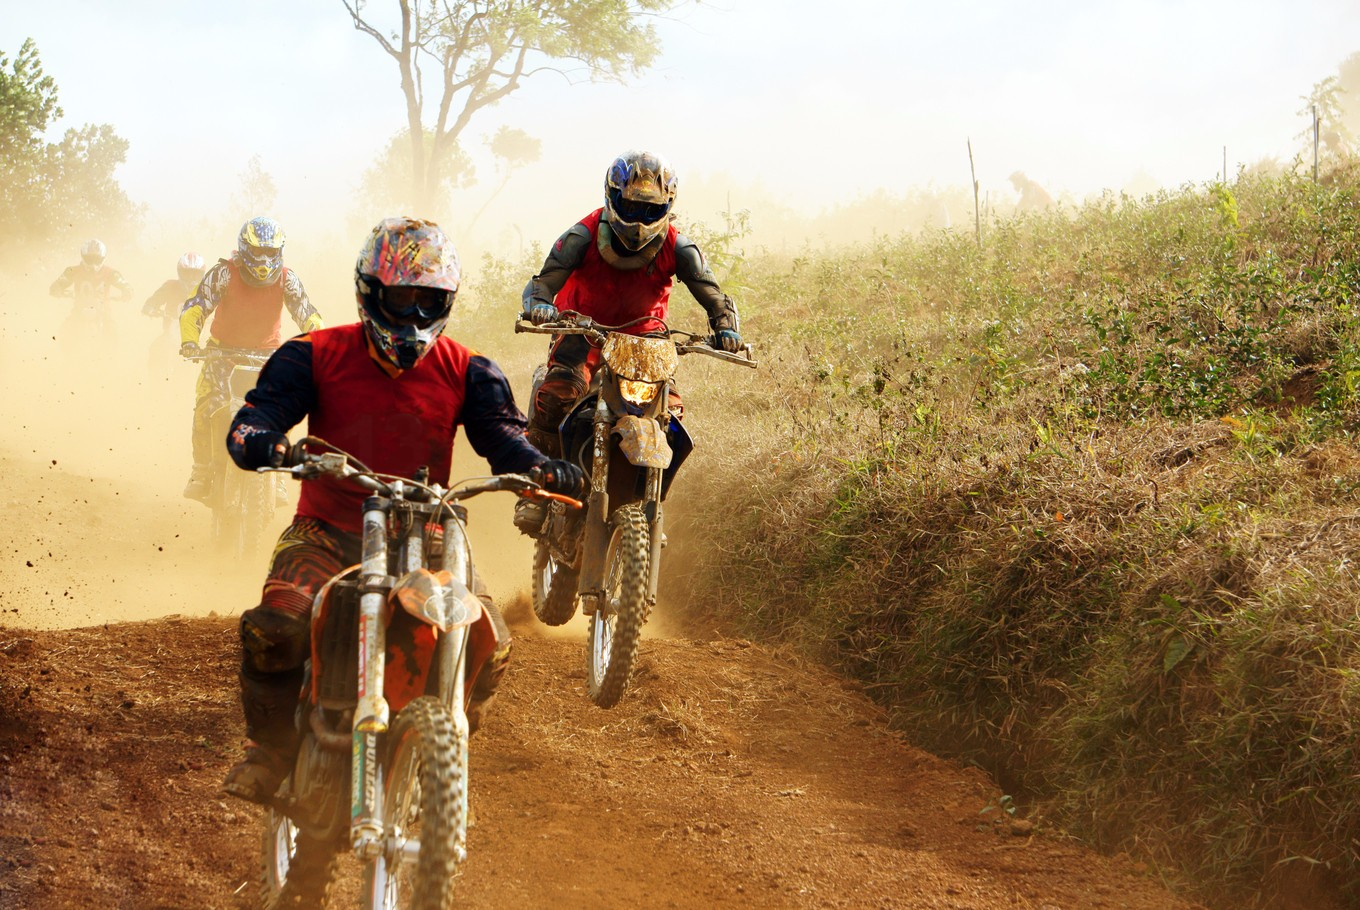 North Central Timor to make Crossborder Road Race an annual event